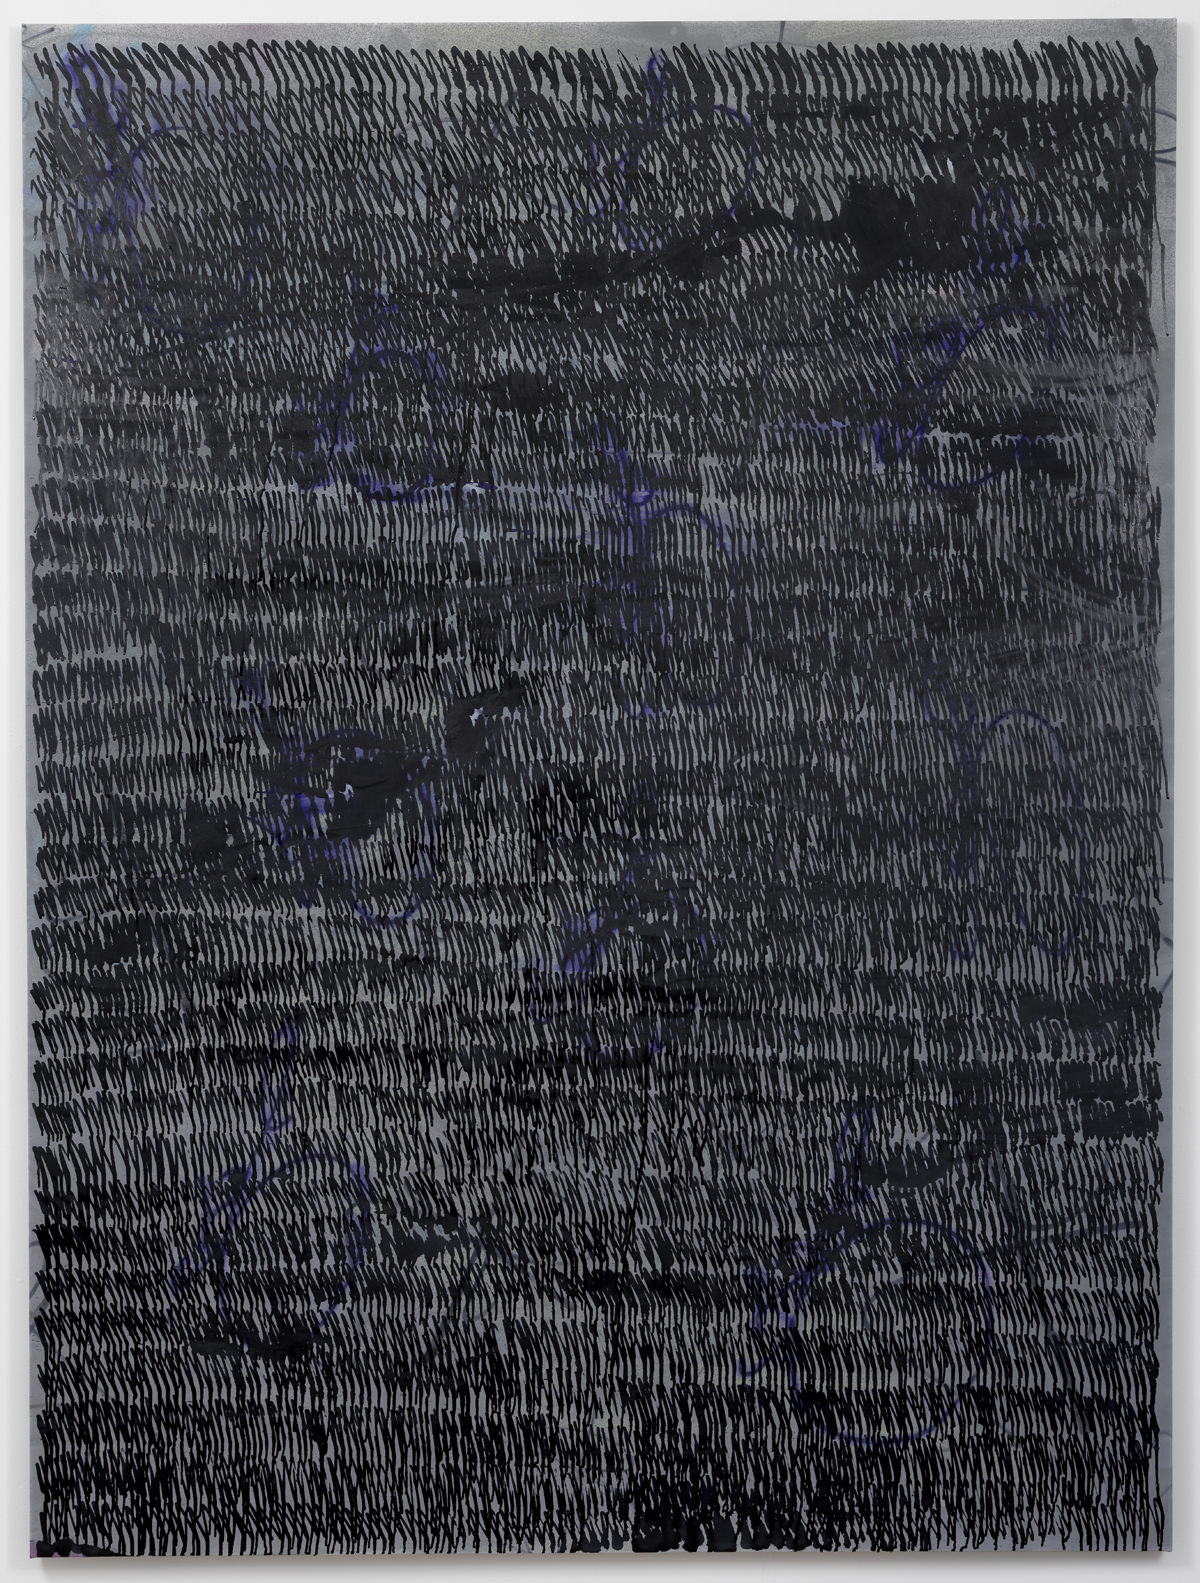 Ziggy Grudzinskas, The Void, 2015, acrylic, ink & spray paint on polyester, 200 x 150 cm